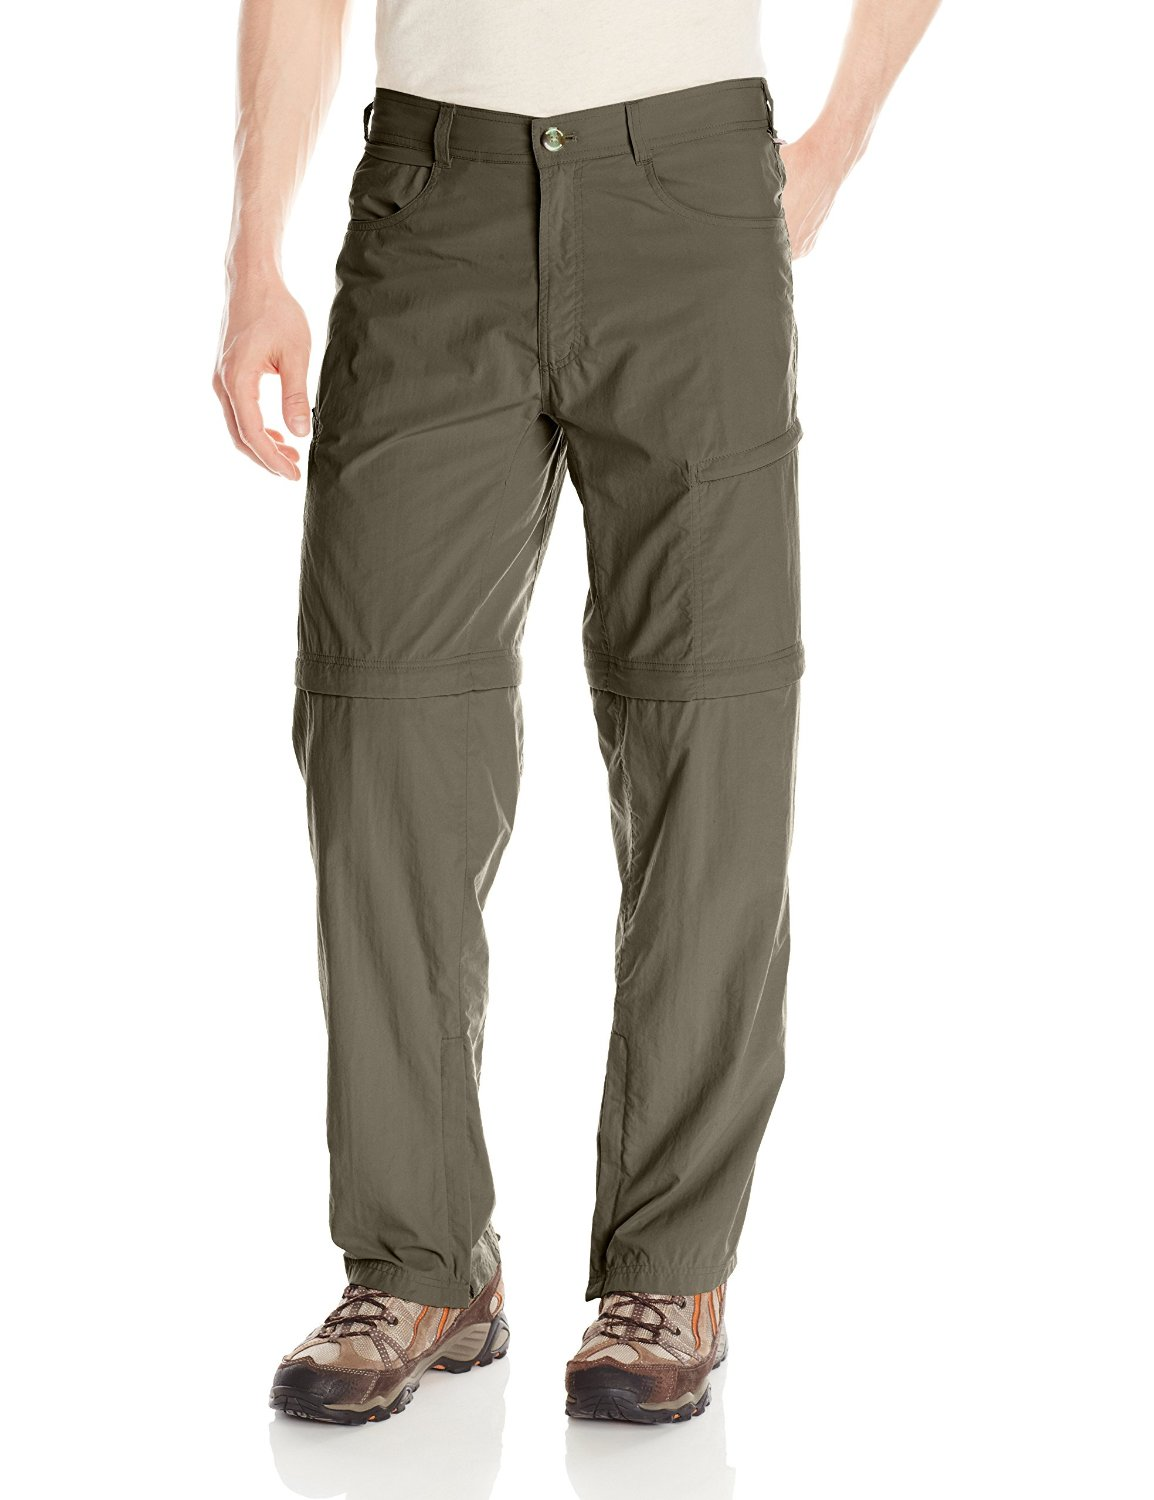 mosquito-repellent-clothing-pants